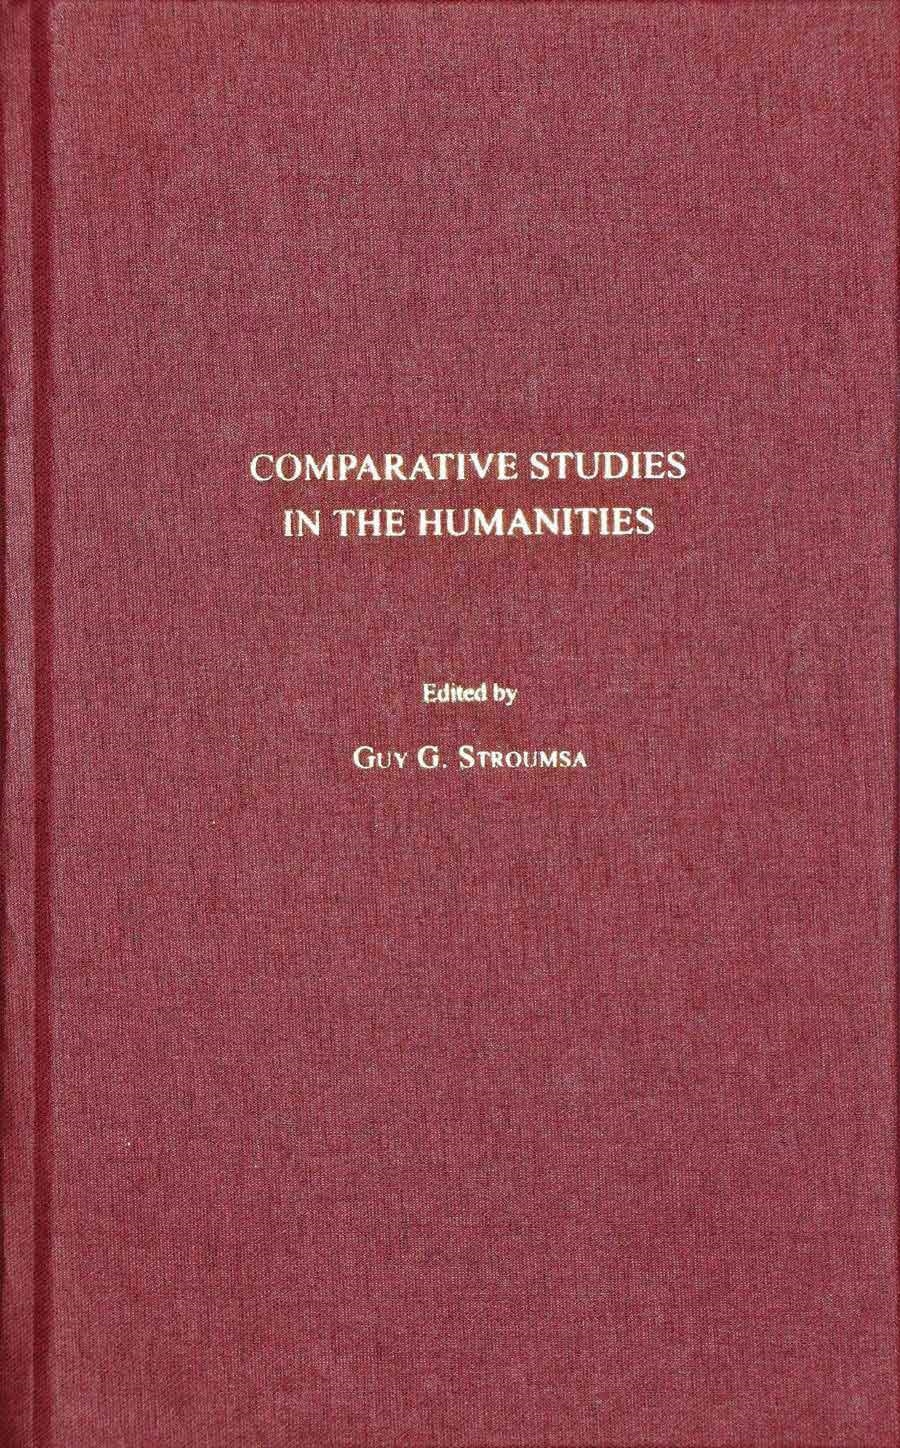 Comparative Studies in the Humanities